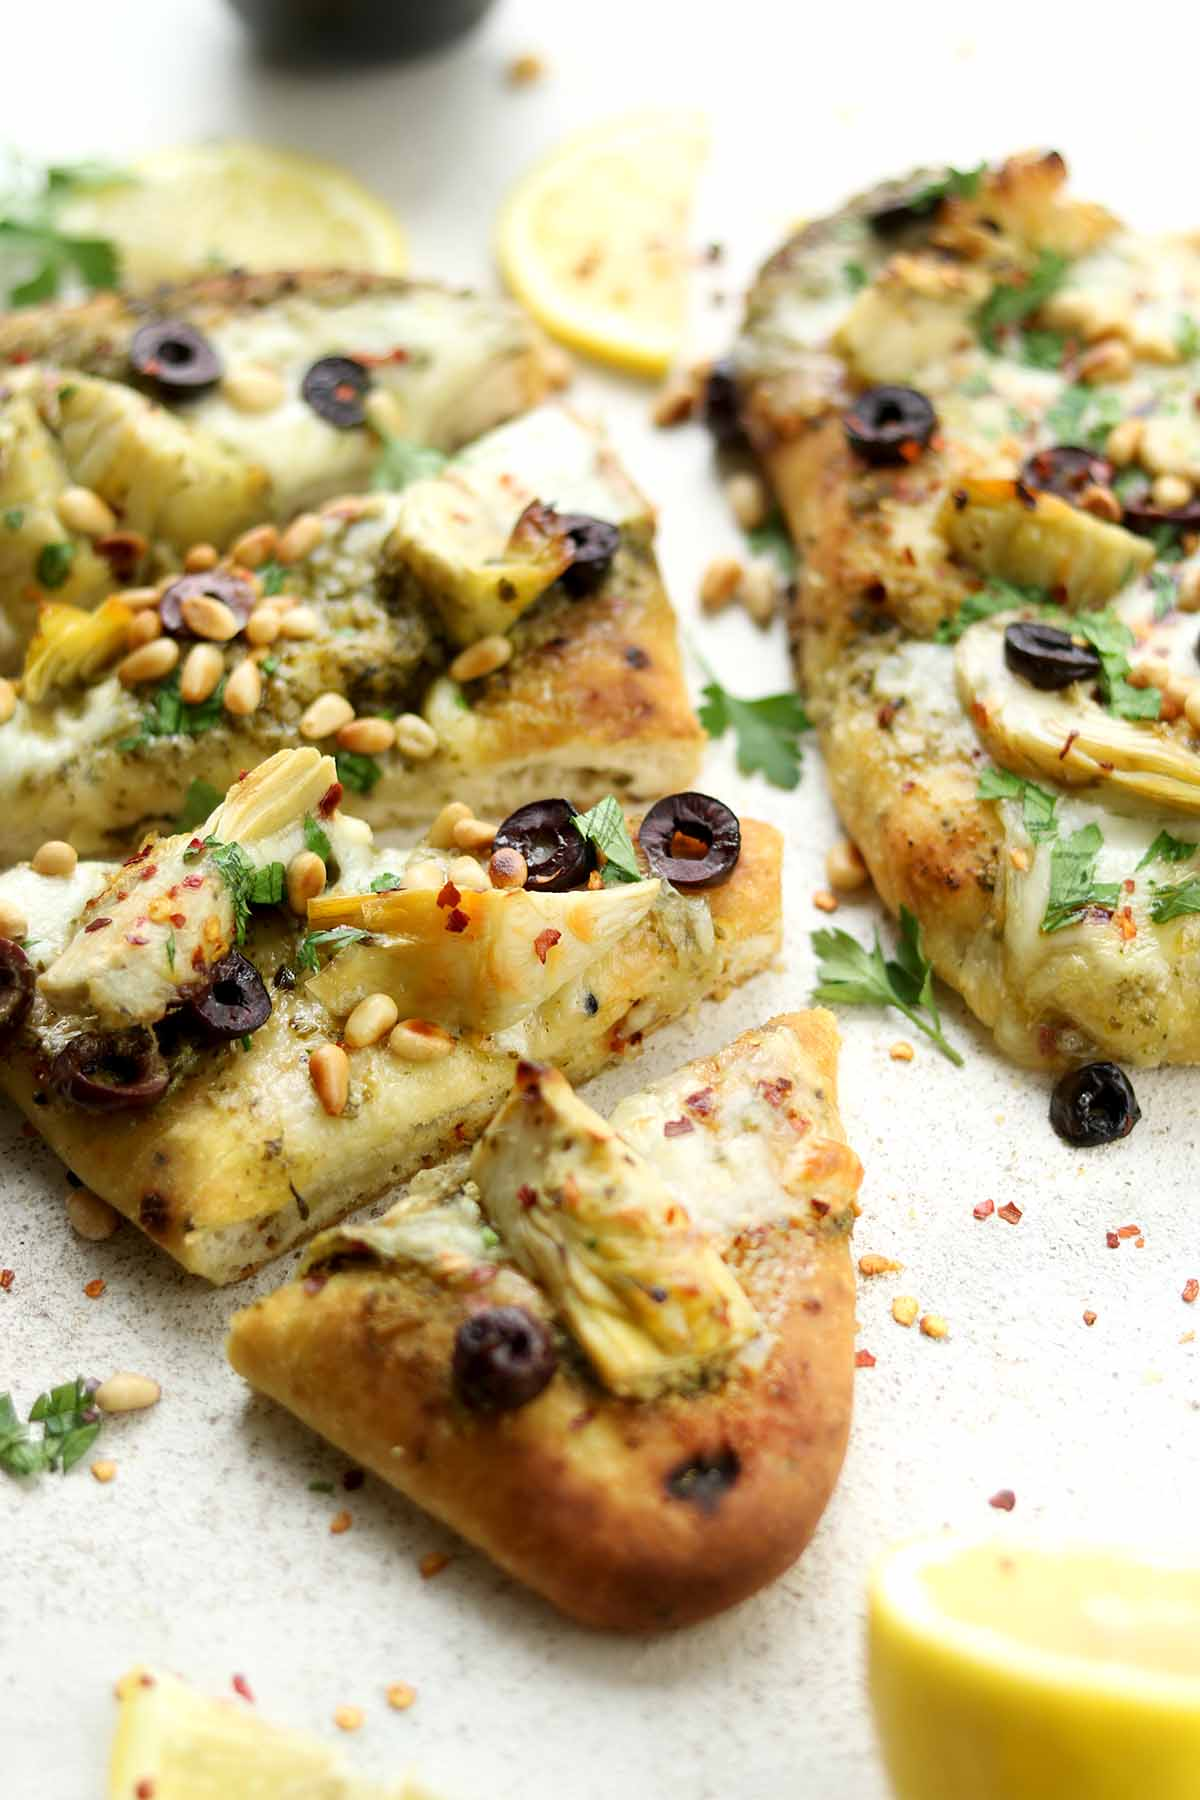 Artichoke & Olive Naan Pizza cut into slices close up